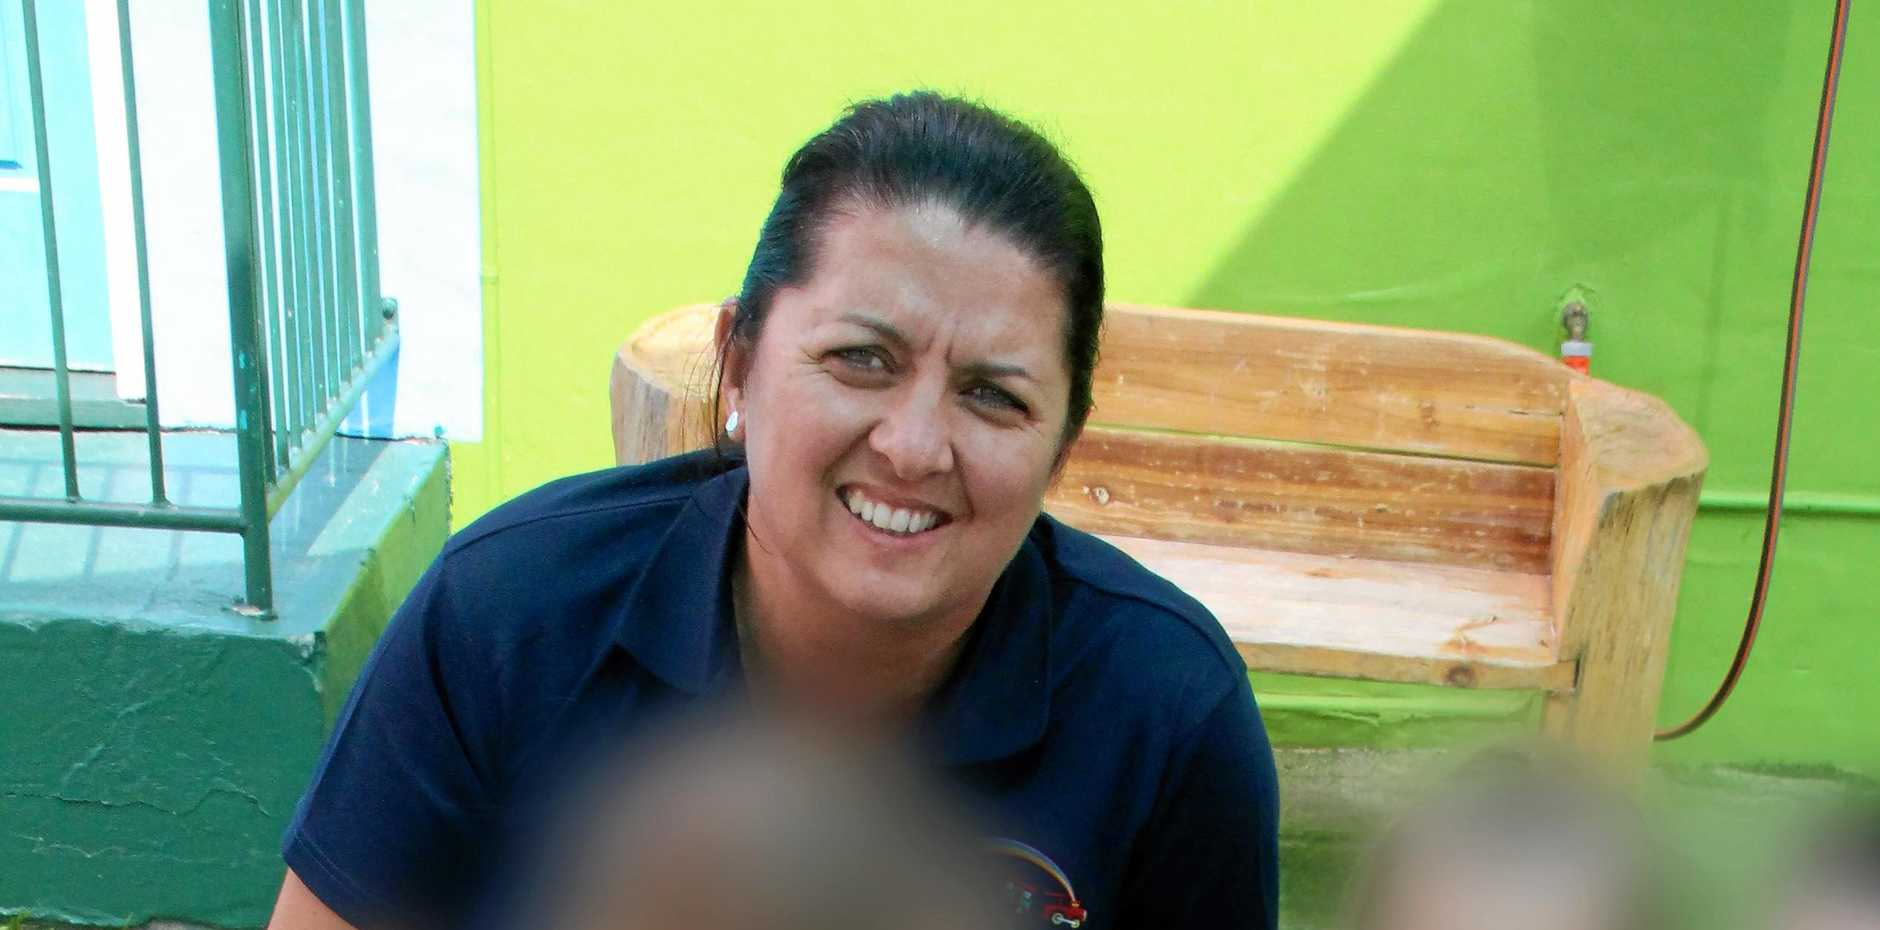 Casino childcare director Liesl Pyke-Nott, 46, has been charged with four counts of having liability when a body corporate contravenes and one charge of giving false information to a regulatory authority on May 21 last year when questioned about the staff member allegedly inflicting harm.